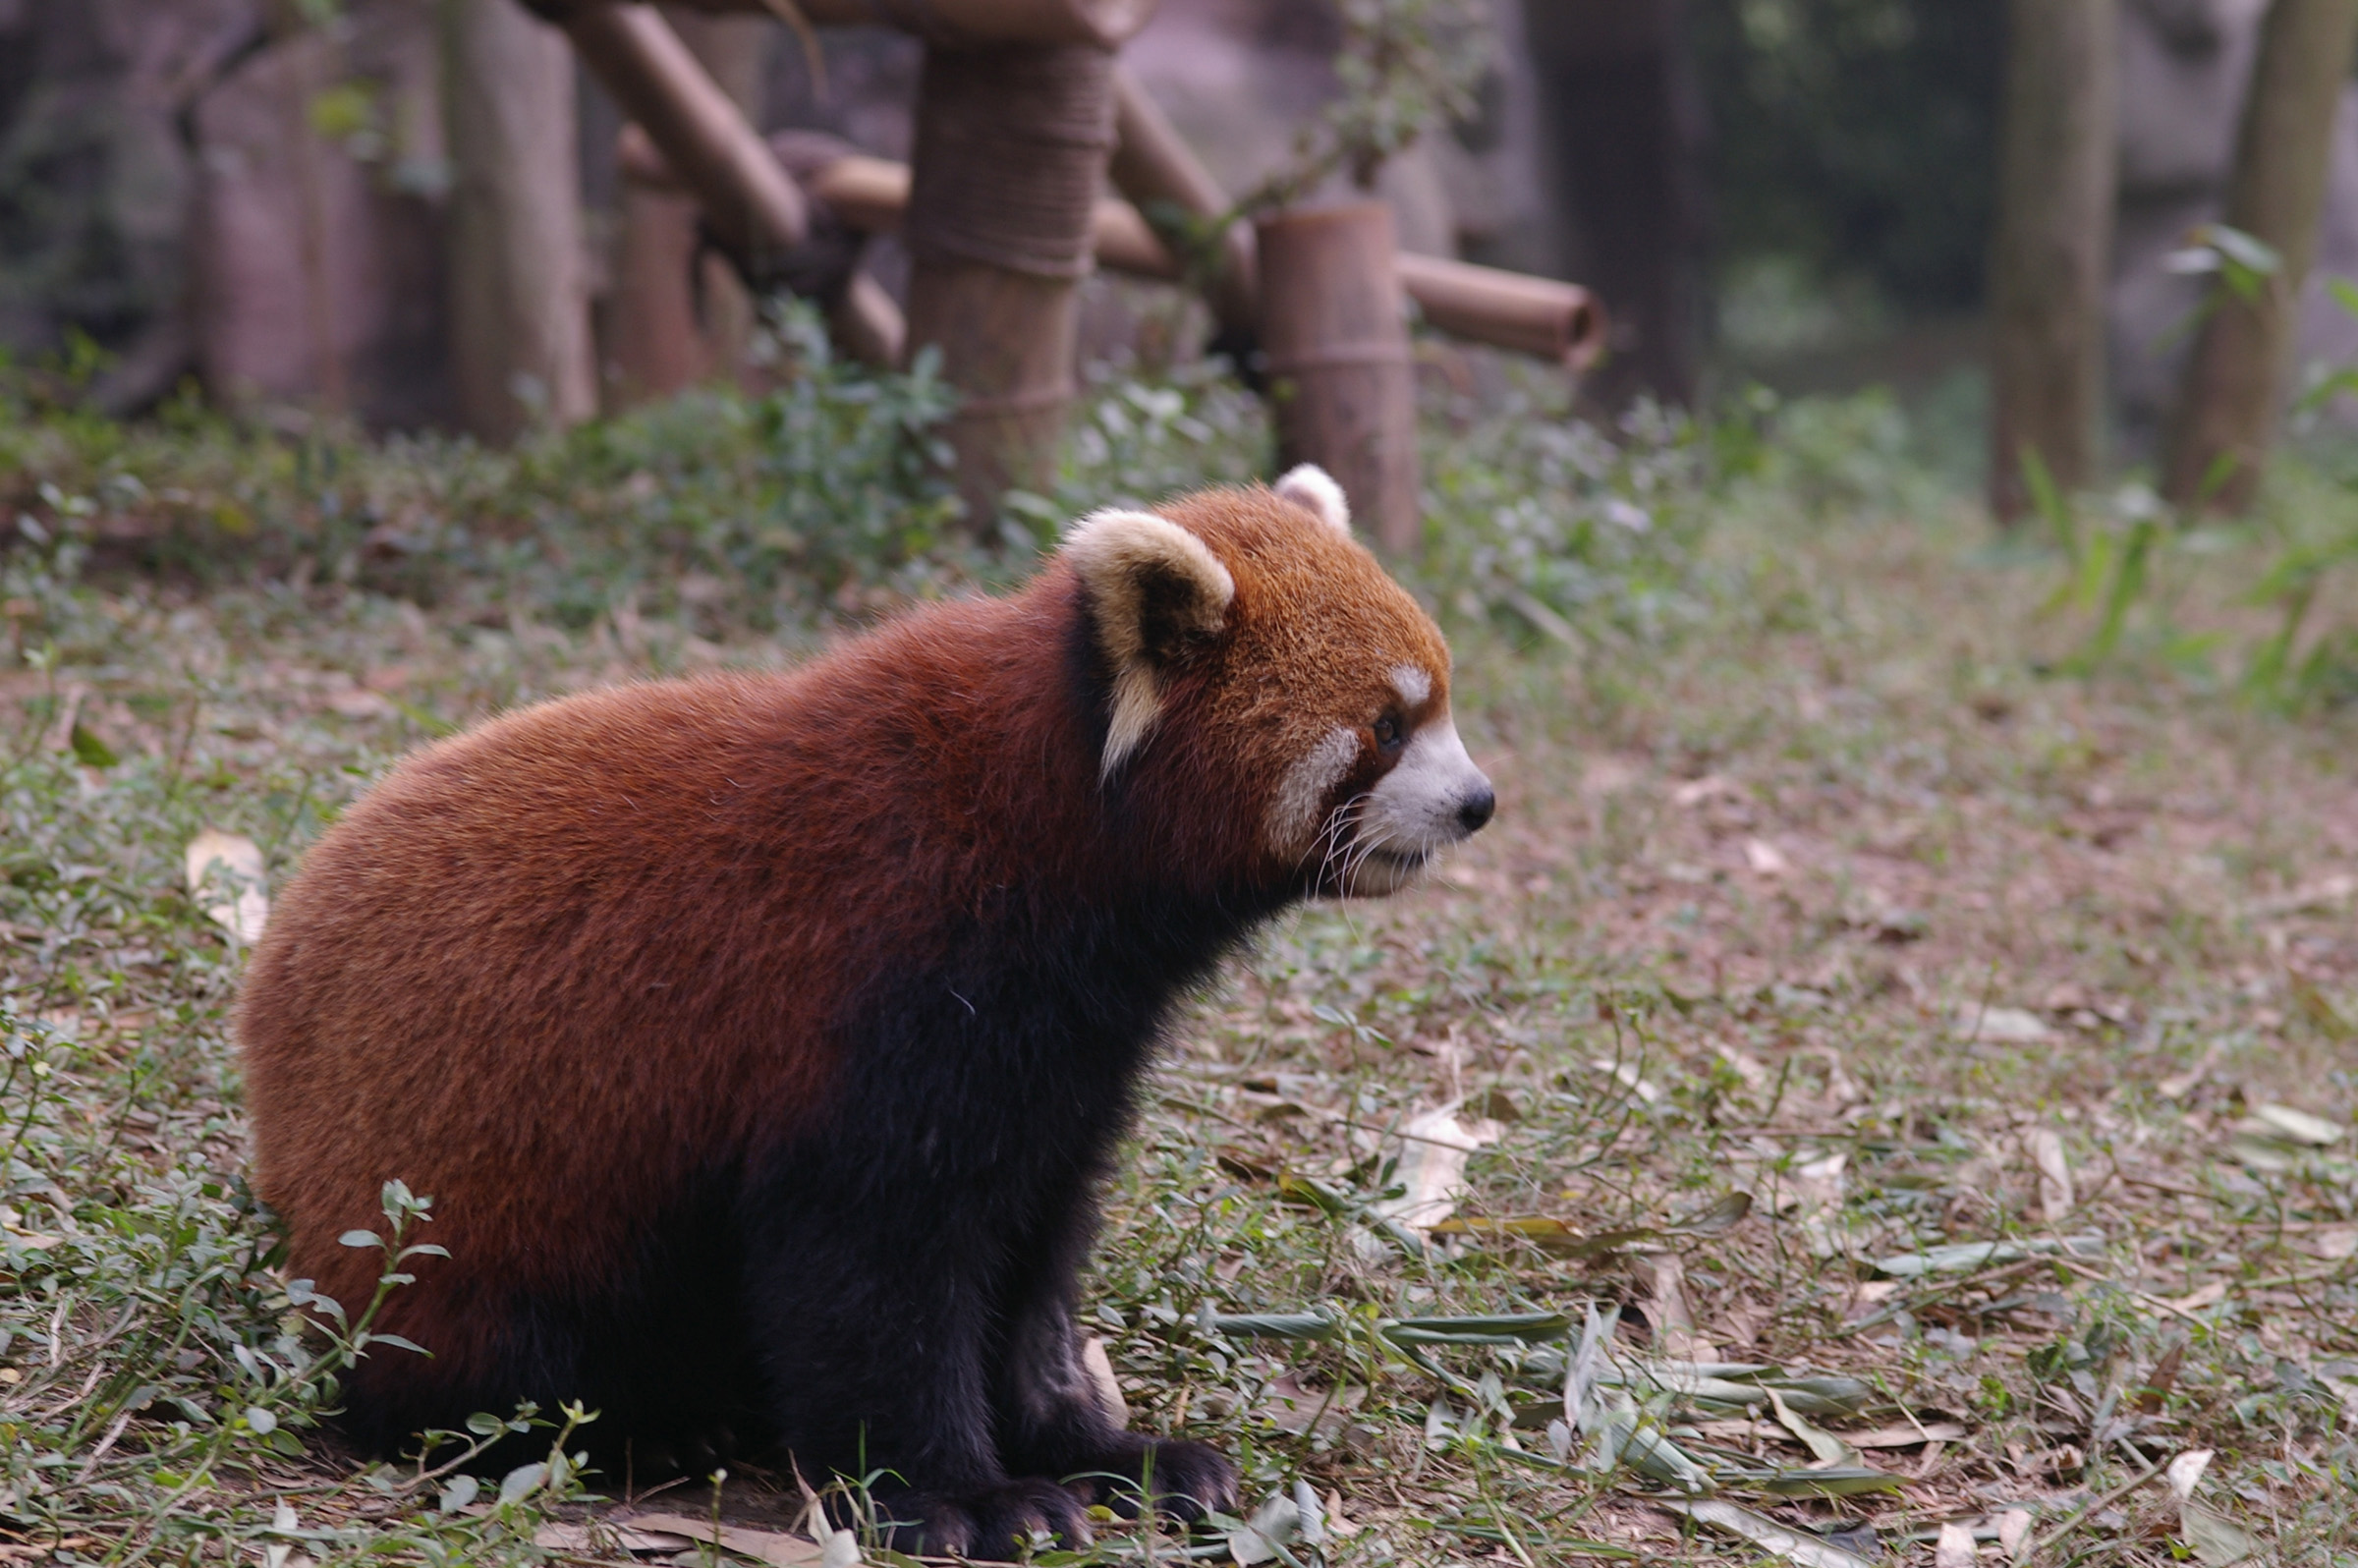 China Animal Wildlife - Grassy Zoo